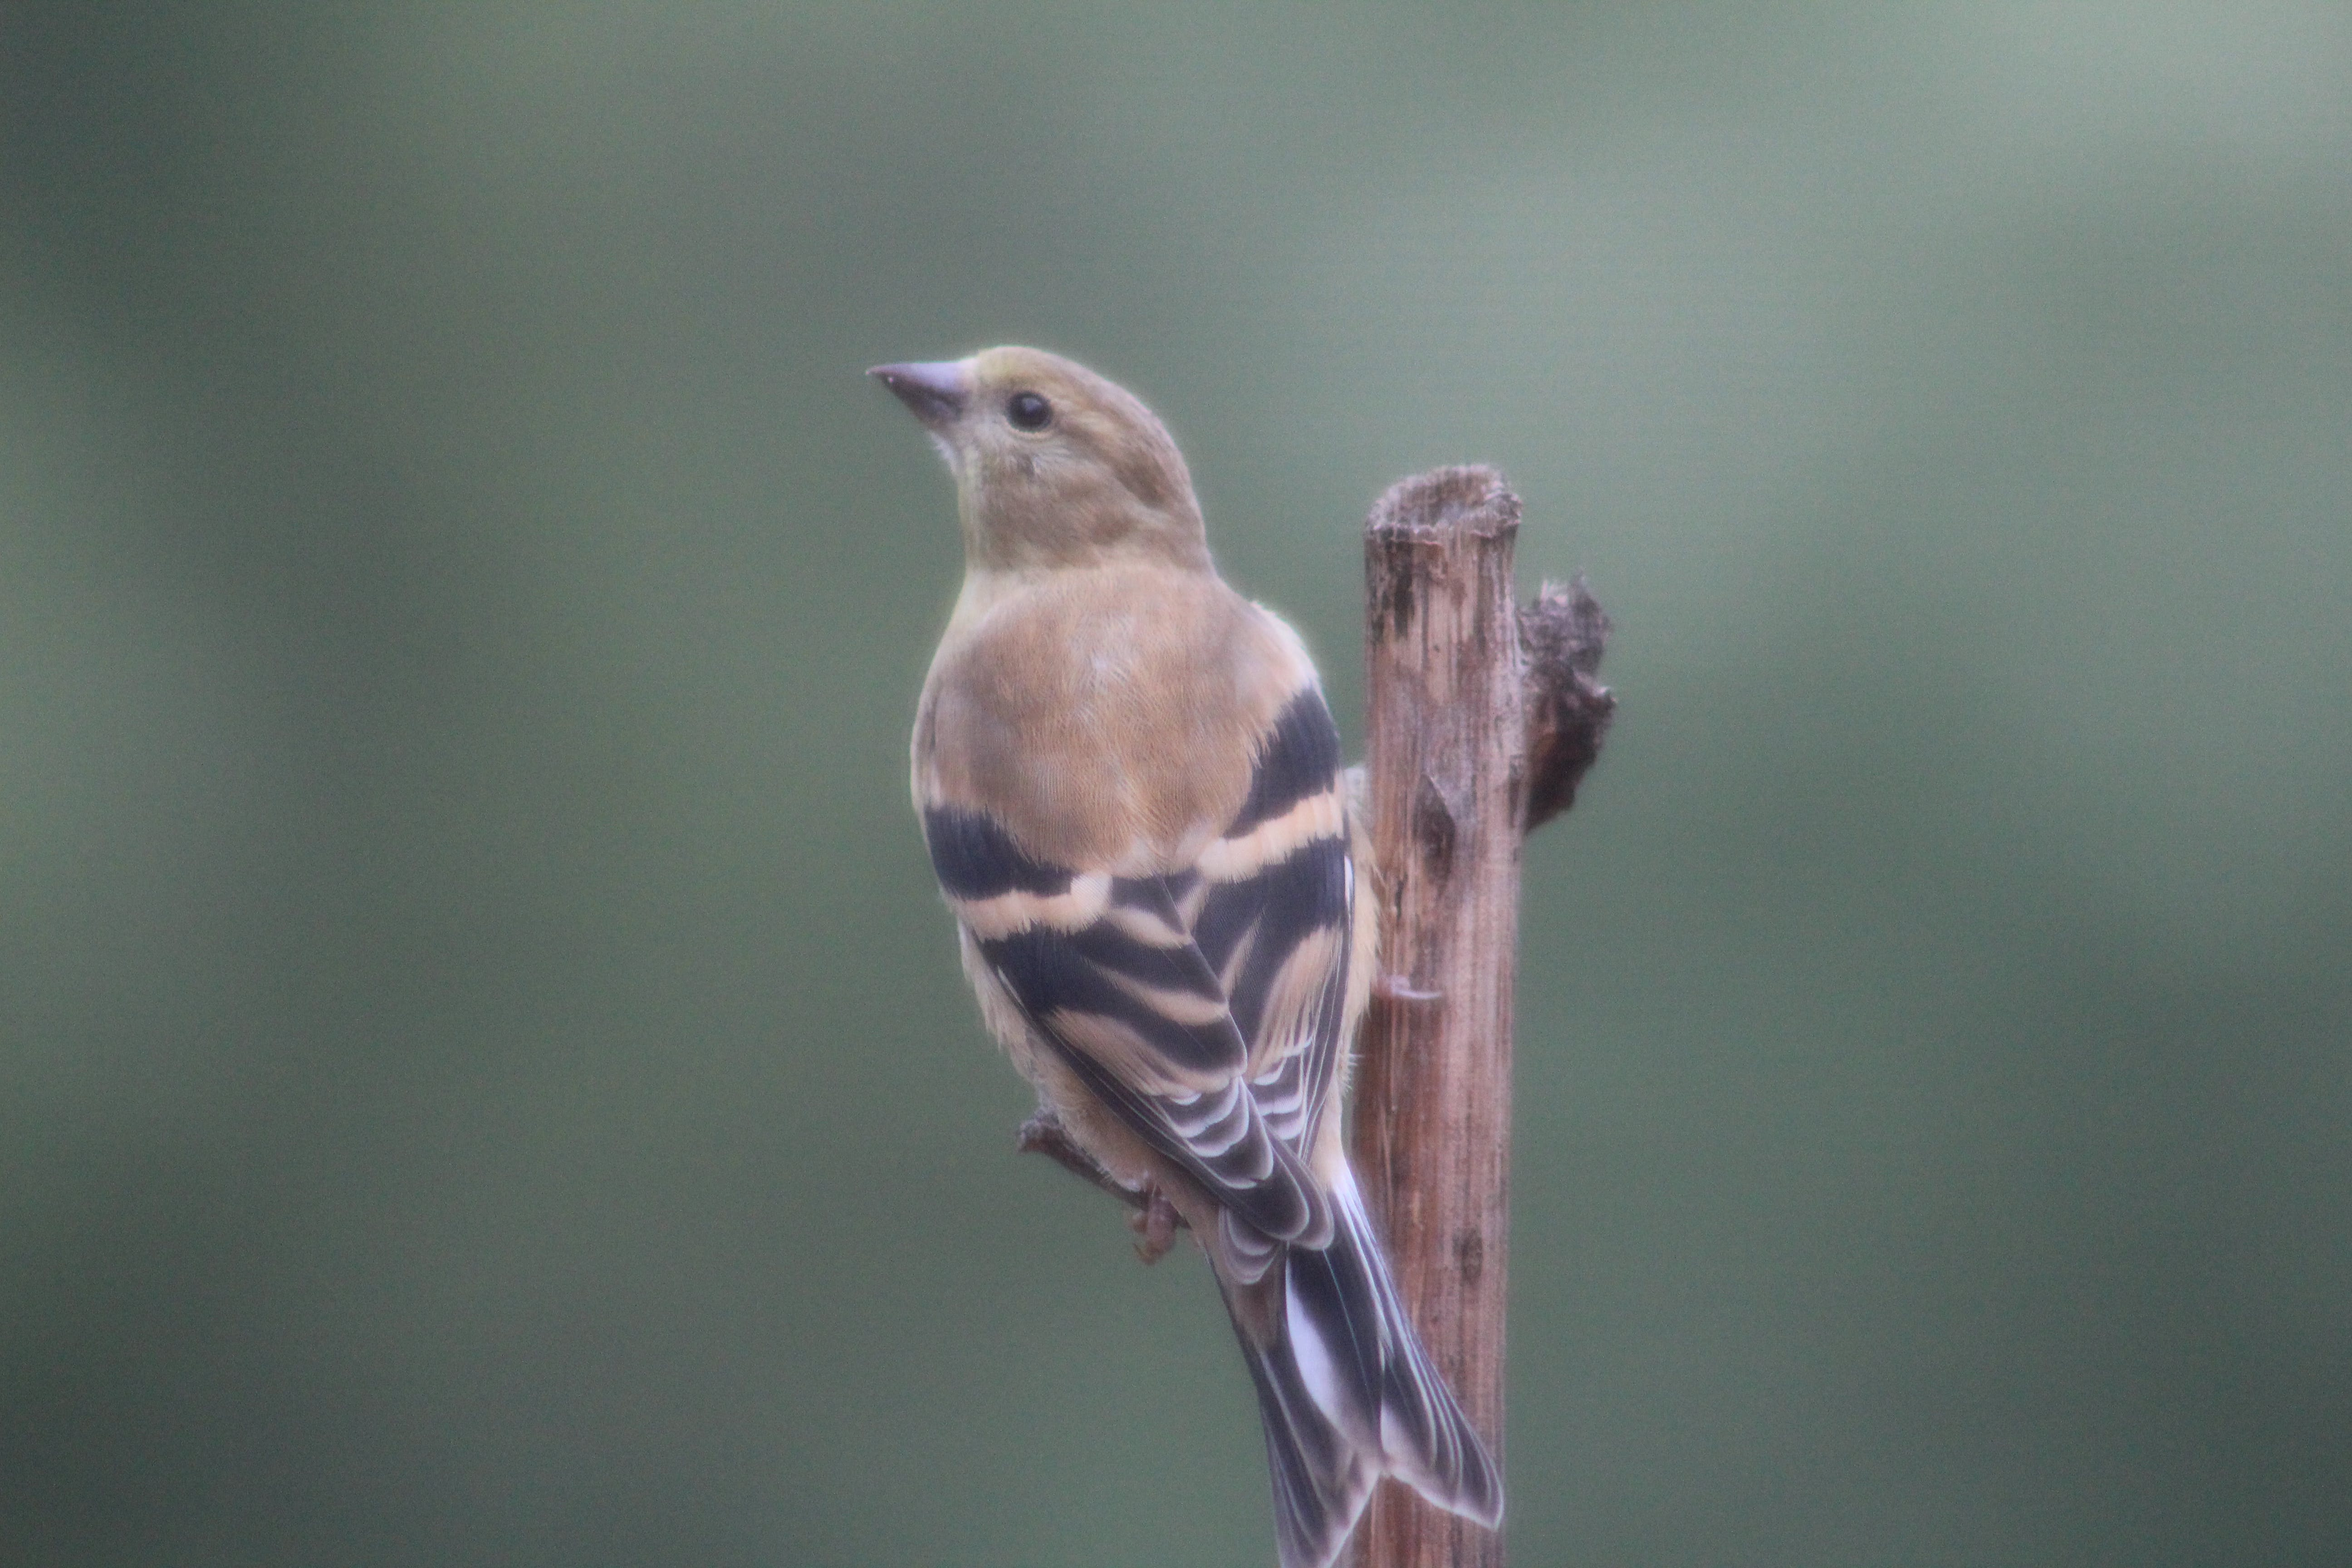 Free stock photo of American Goldfinch, birds, female birds, female goldfinch